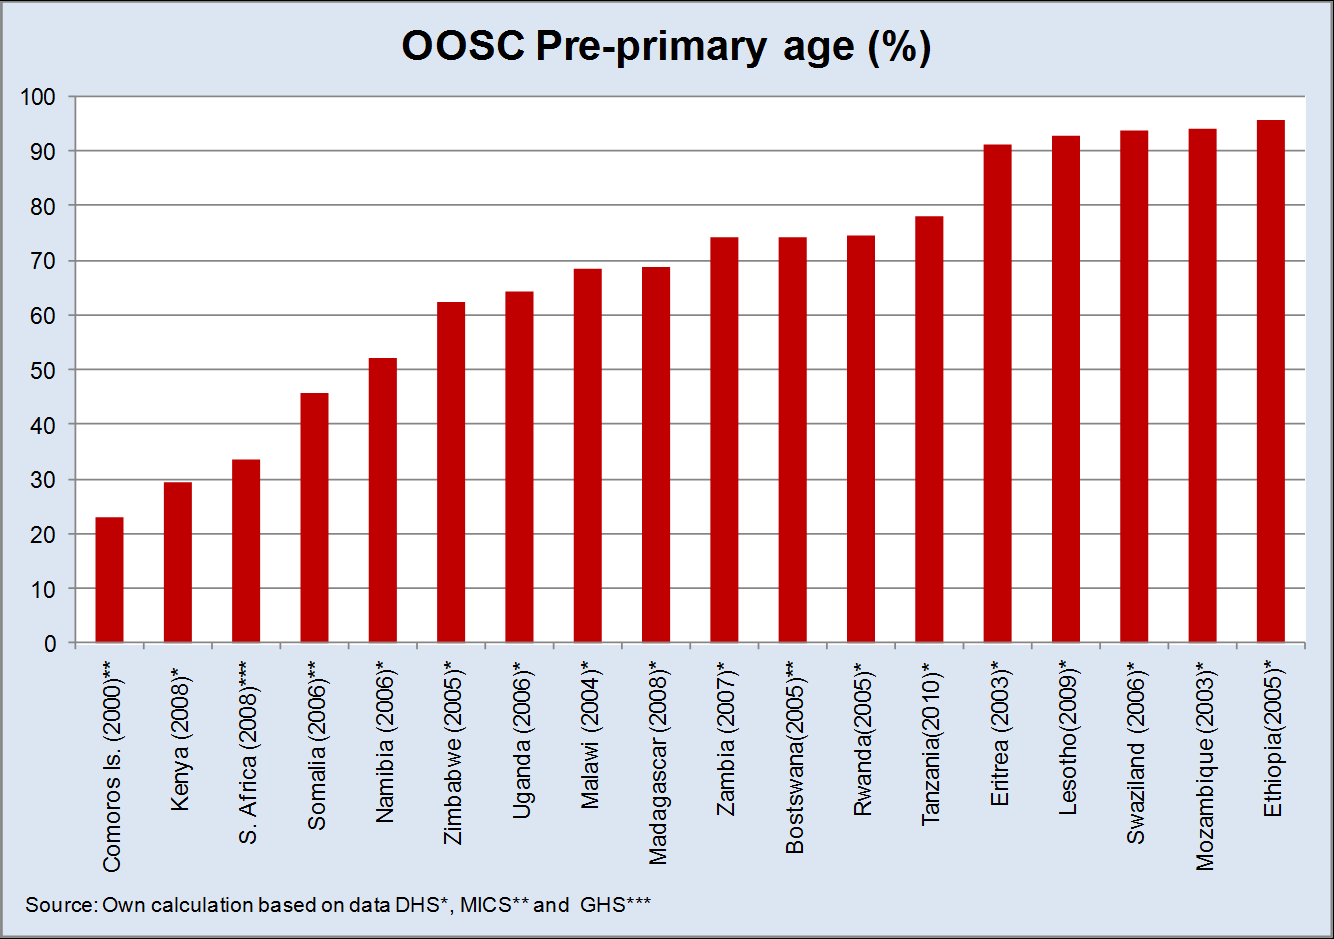 while in Eritrea it increased from 5 per cent to 13 per cent during the same period (UNICEF SEER, 2011). Figure 4 shows the percentage of pre-primary age OOSC.